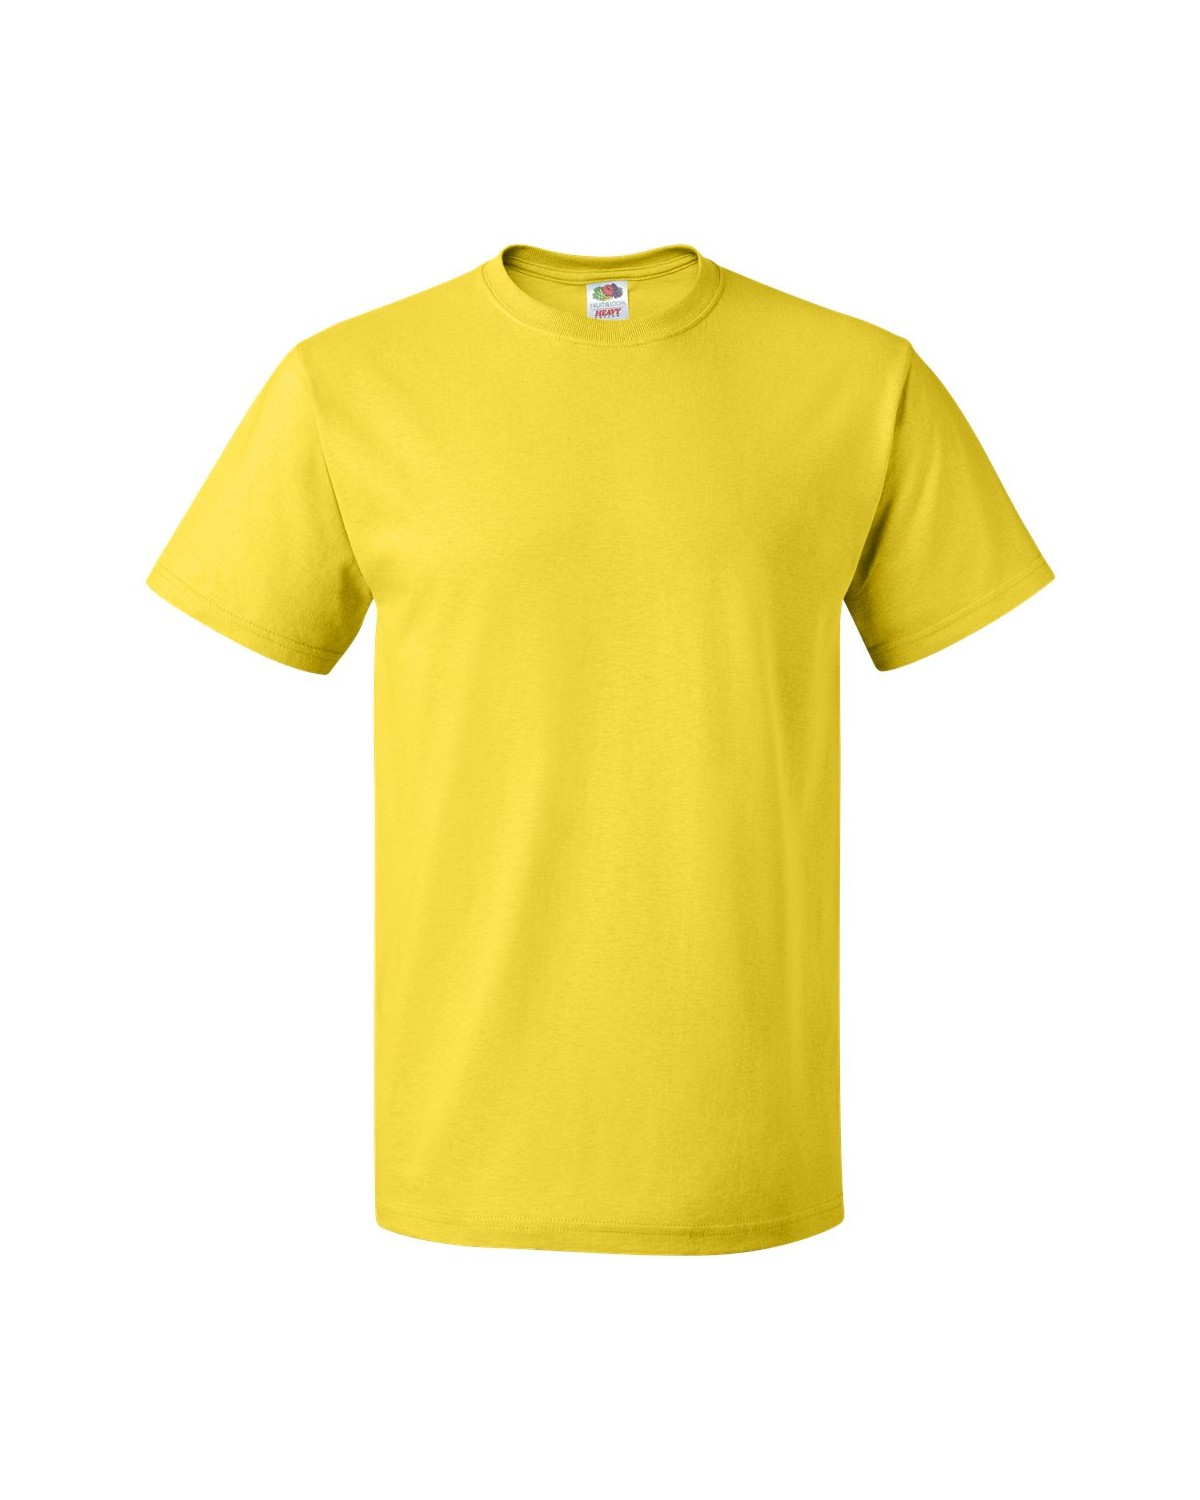 3930R Fruit of the Loom YELLOW